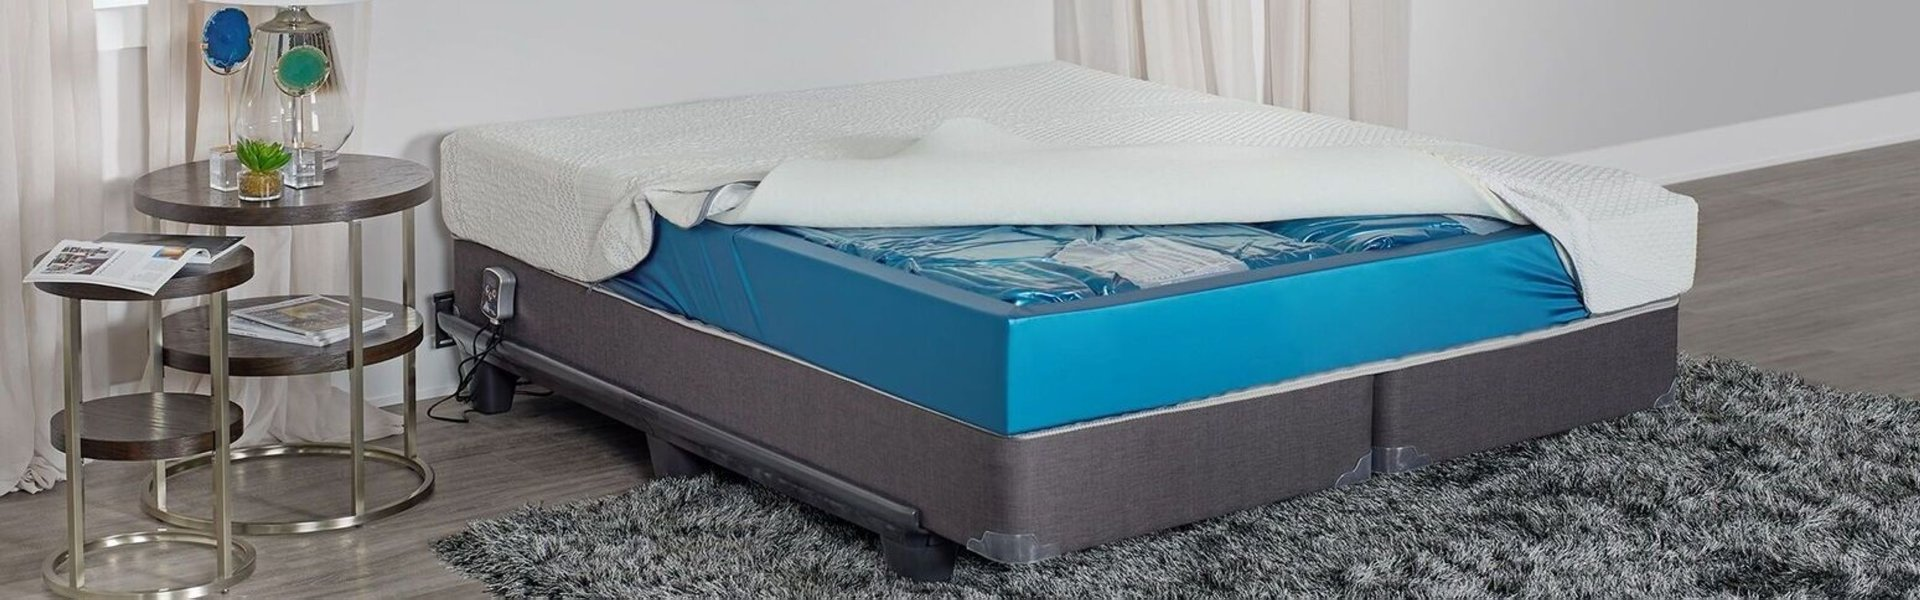 Best Waterbed Mattreses Reviewed in Detail